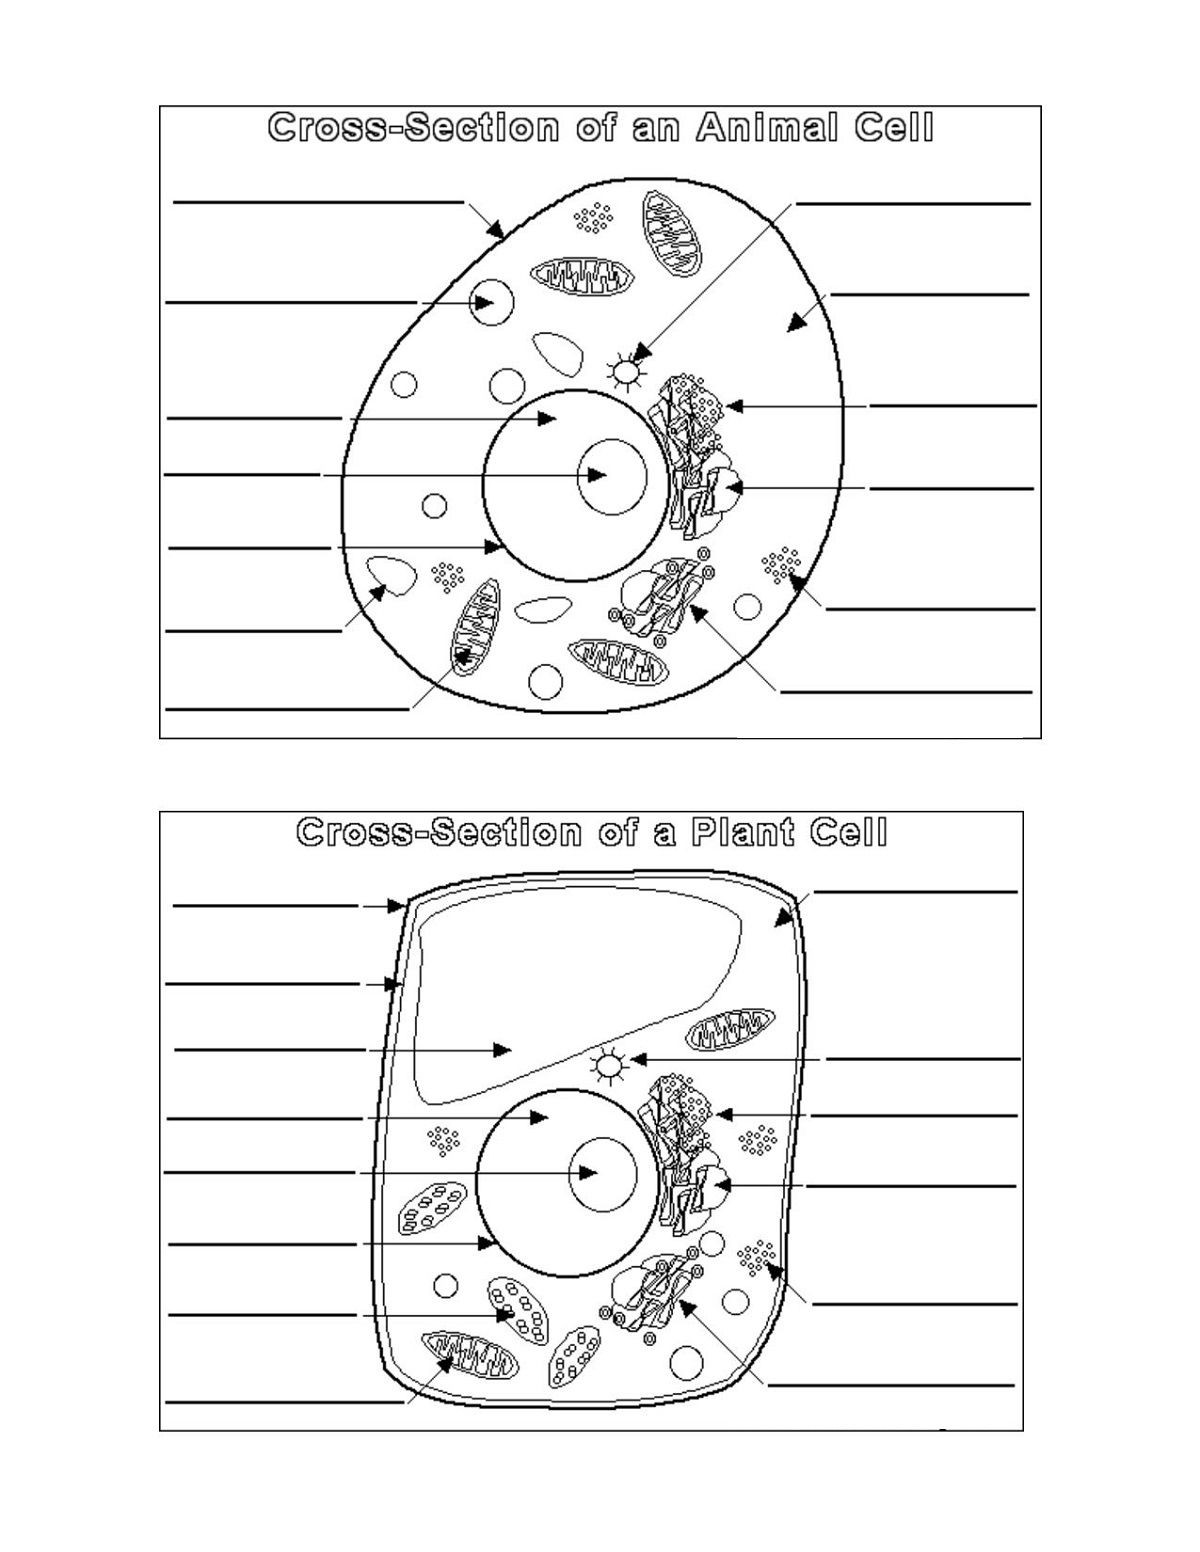 Printable Animal Cell Diagram Plant and Animal Cell Diagrams มีรูปภาพ